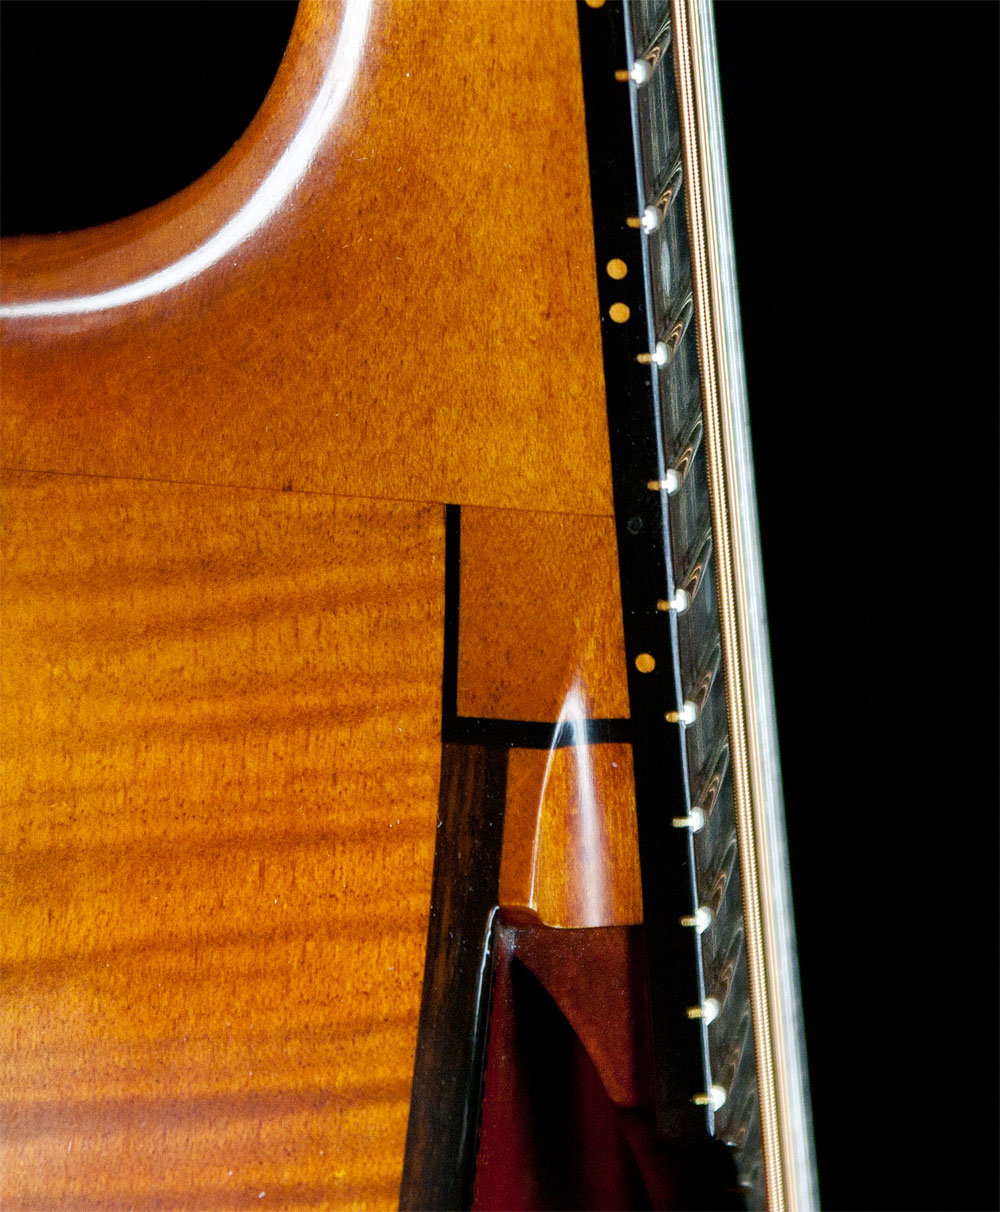 mandolin-neck-joint-closeup-A.jpg